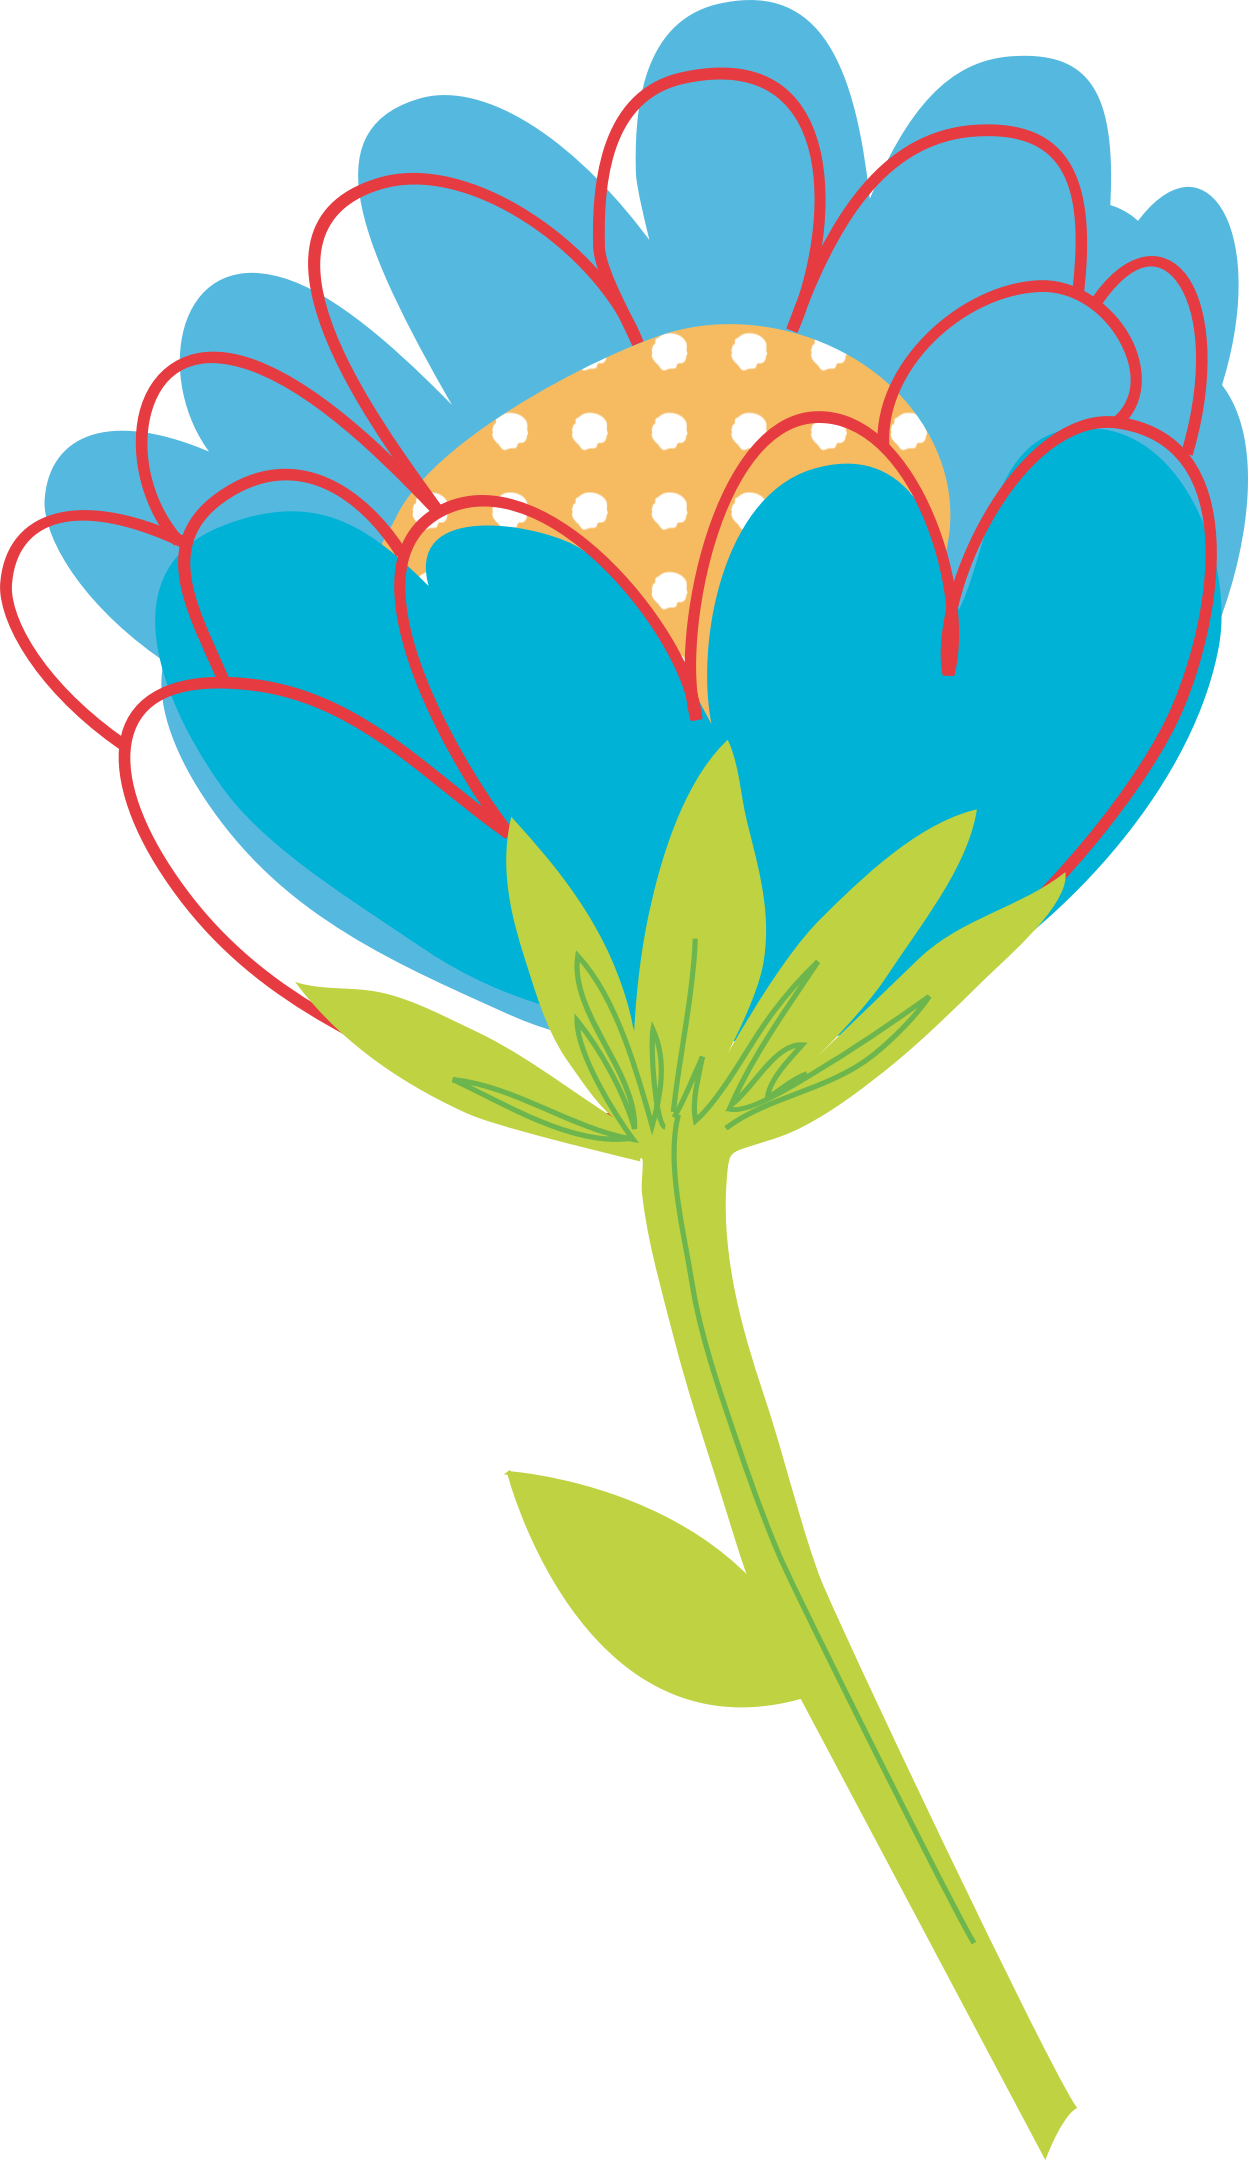 Flowers vector png. Blue flower by konand